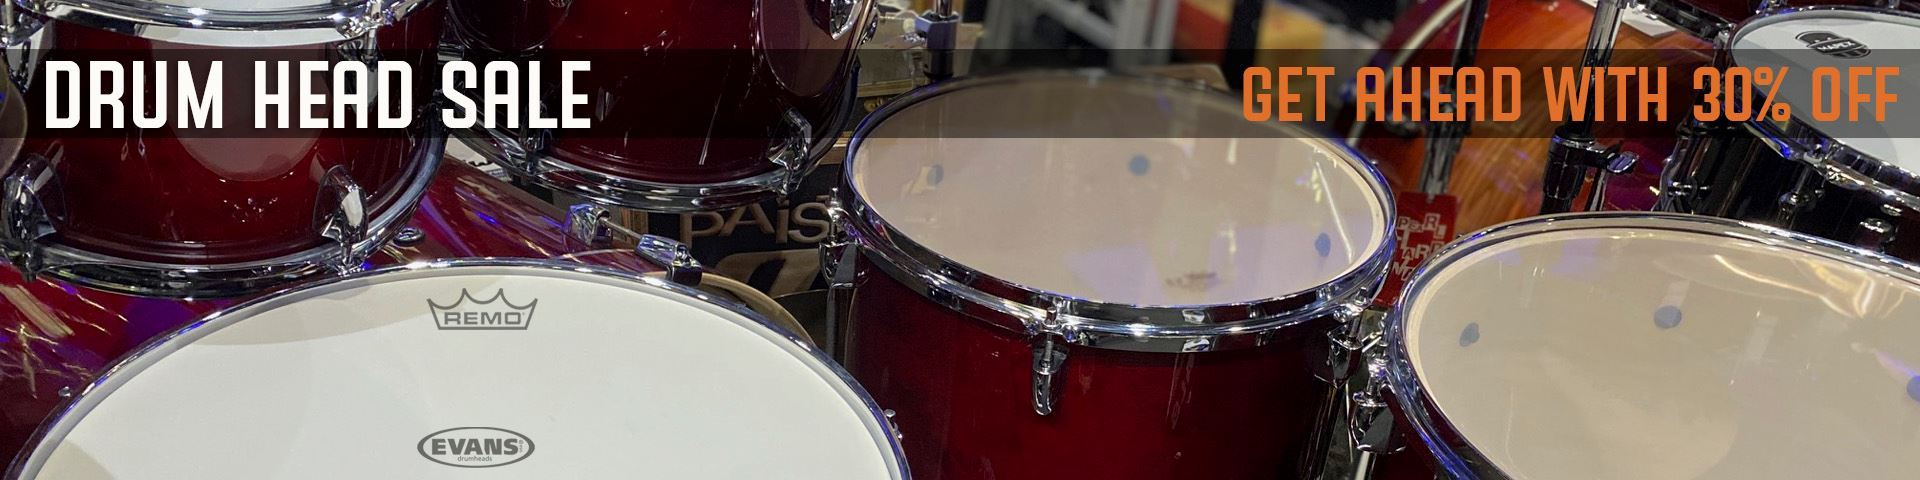 30% Off Remo and Evans Drumheads - While Stocks Last